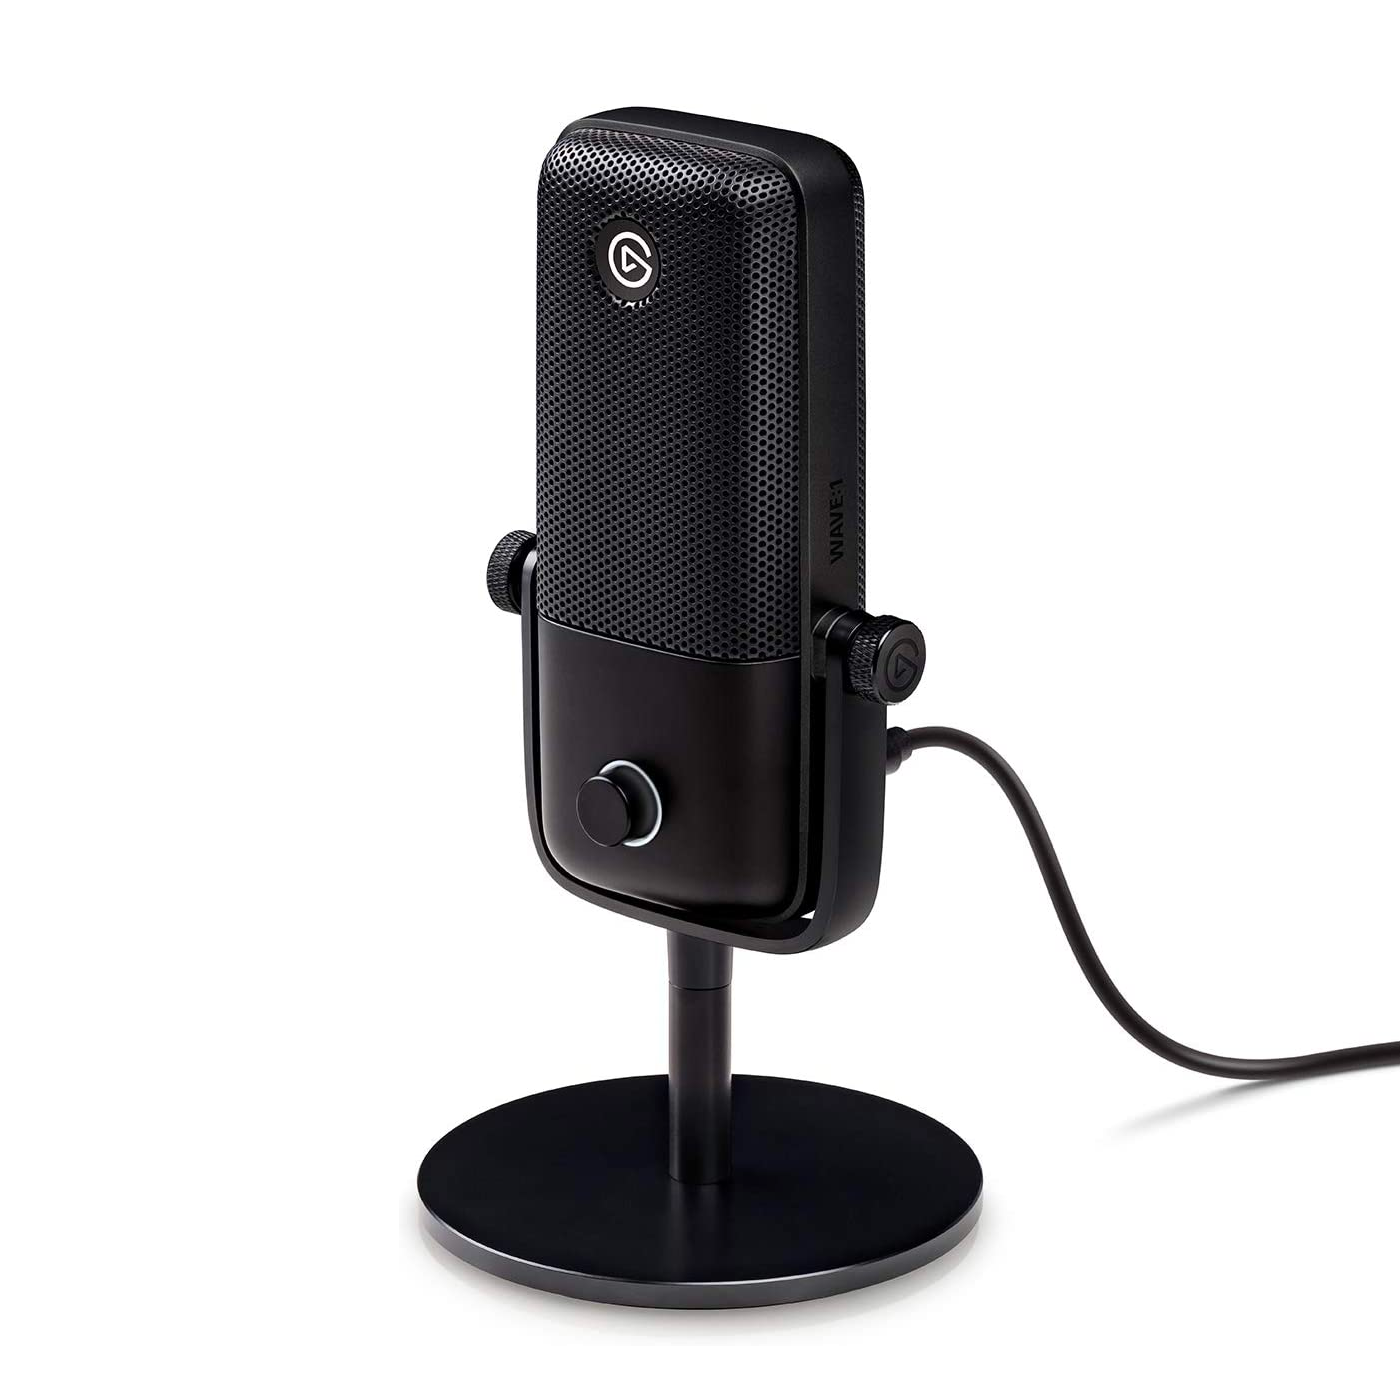 An image of the Elgato Wave 1 microphone on a white background